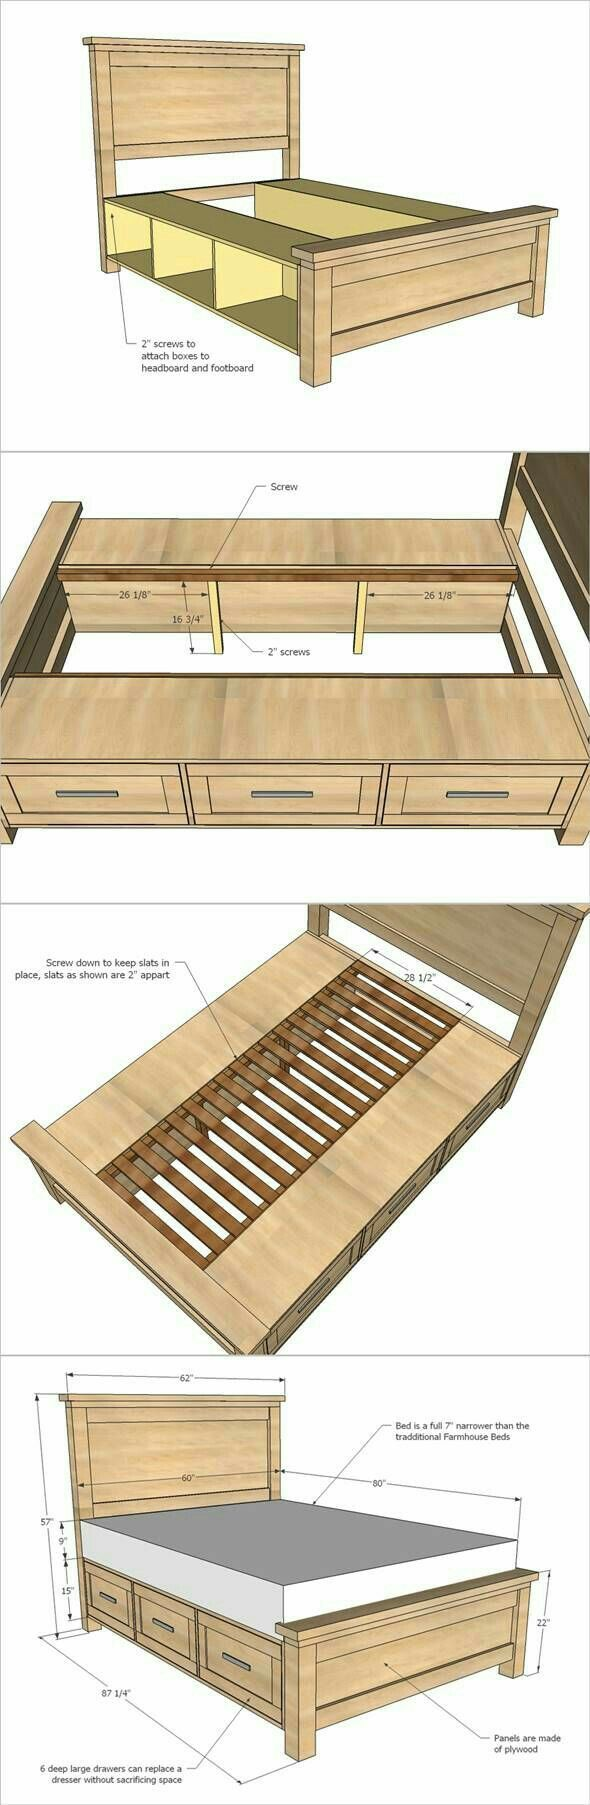 wood profits how to build a farmhouse storage bed with drawers for more great diy projects visit www discover how you can start a woodworking business